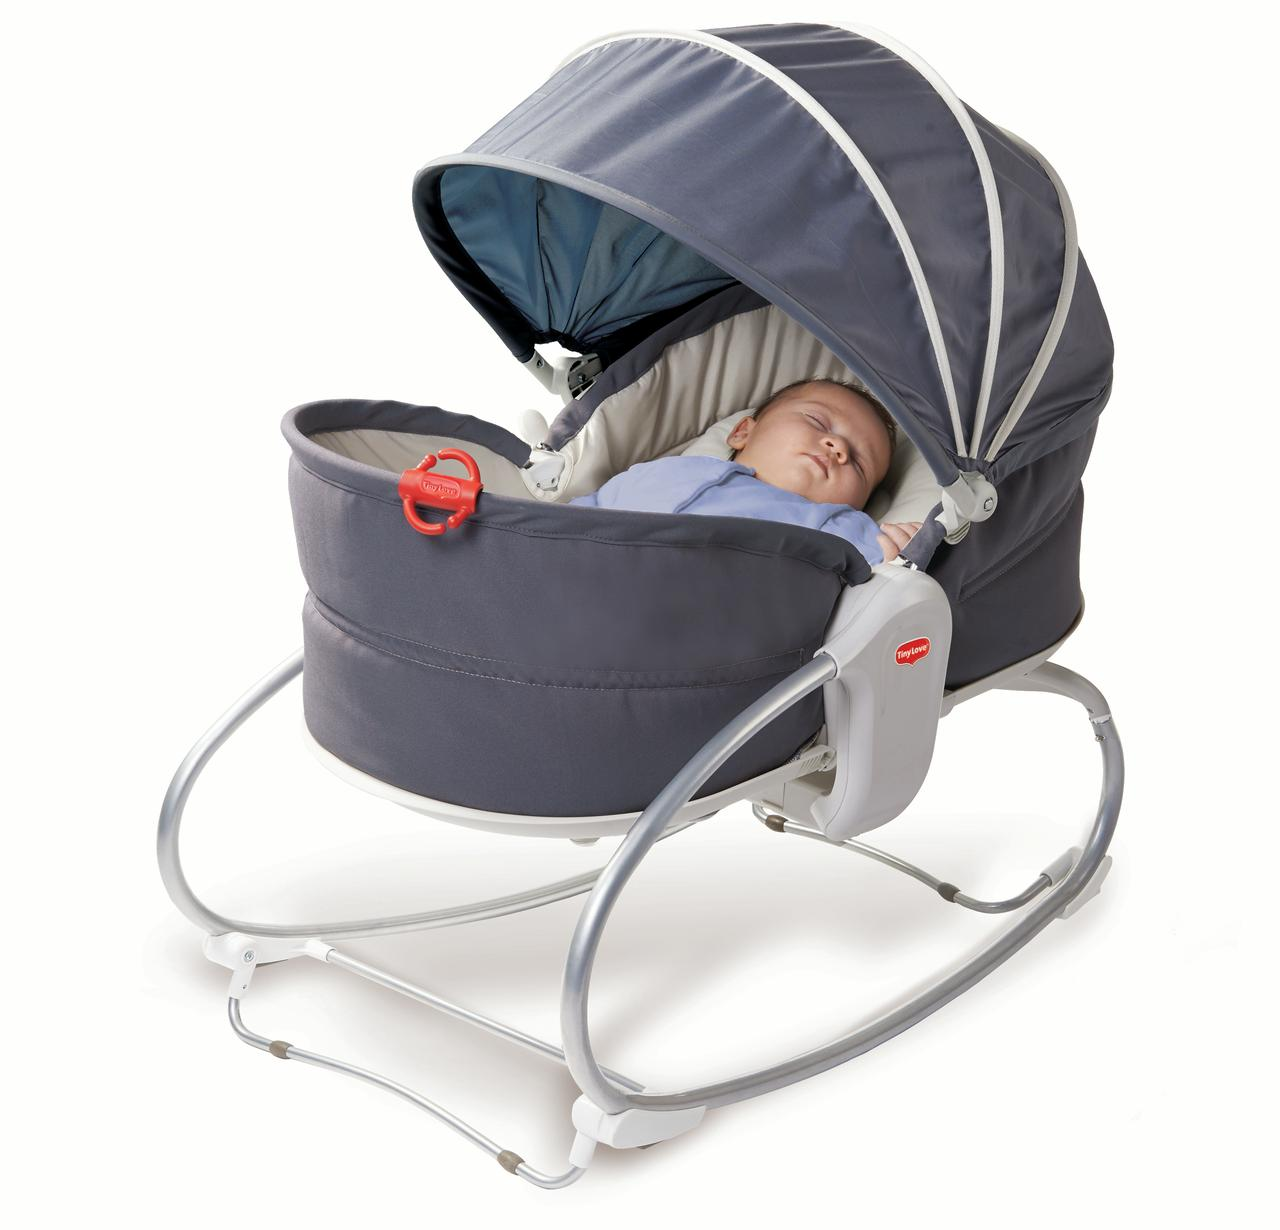 Tiny Love 3-in-1 Cozy Baby Rocker-Napper with Recline - Grey